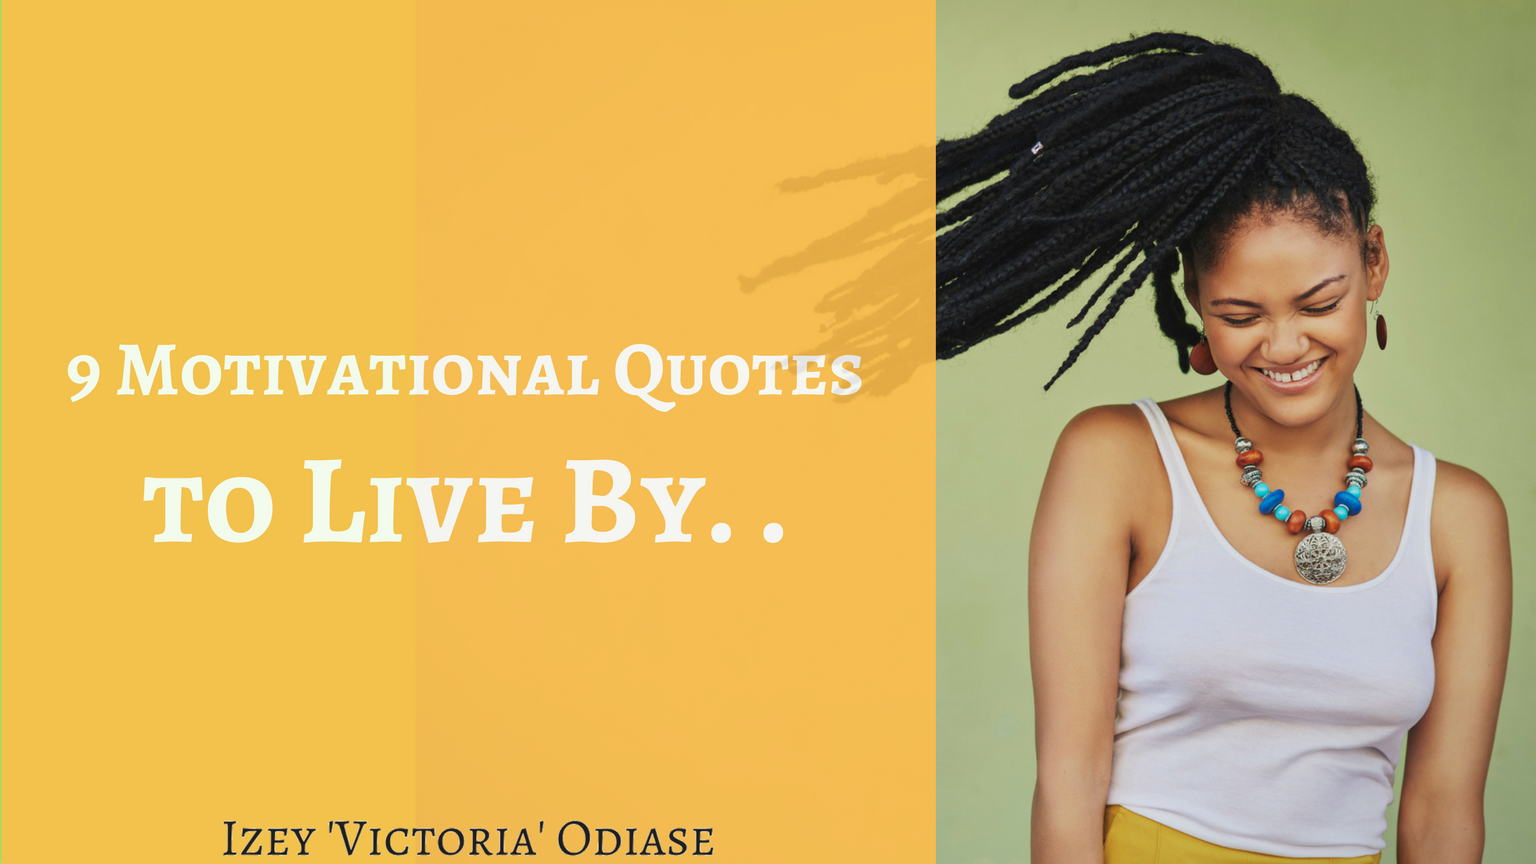 9 Motivational Quotes to Live By